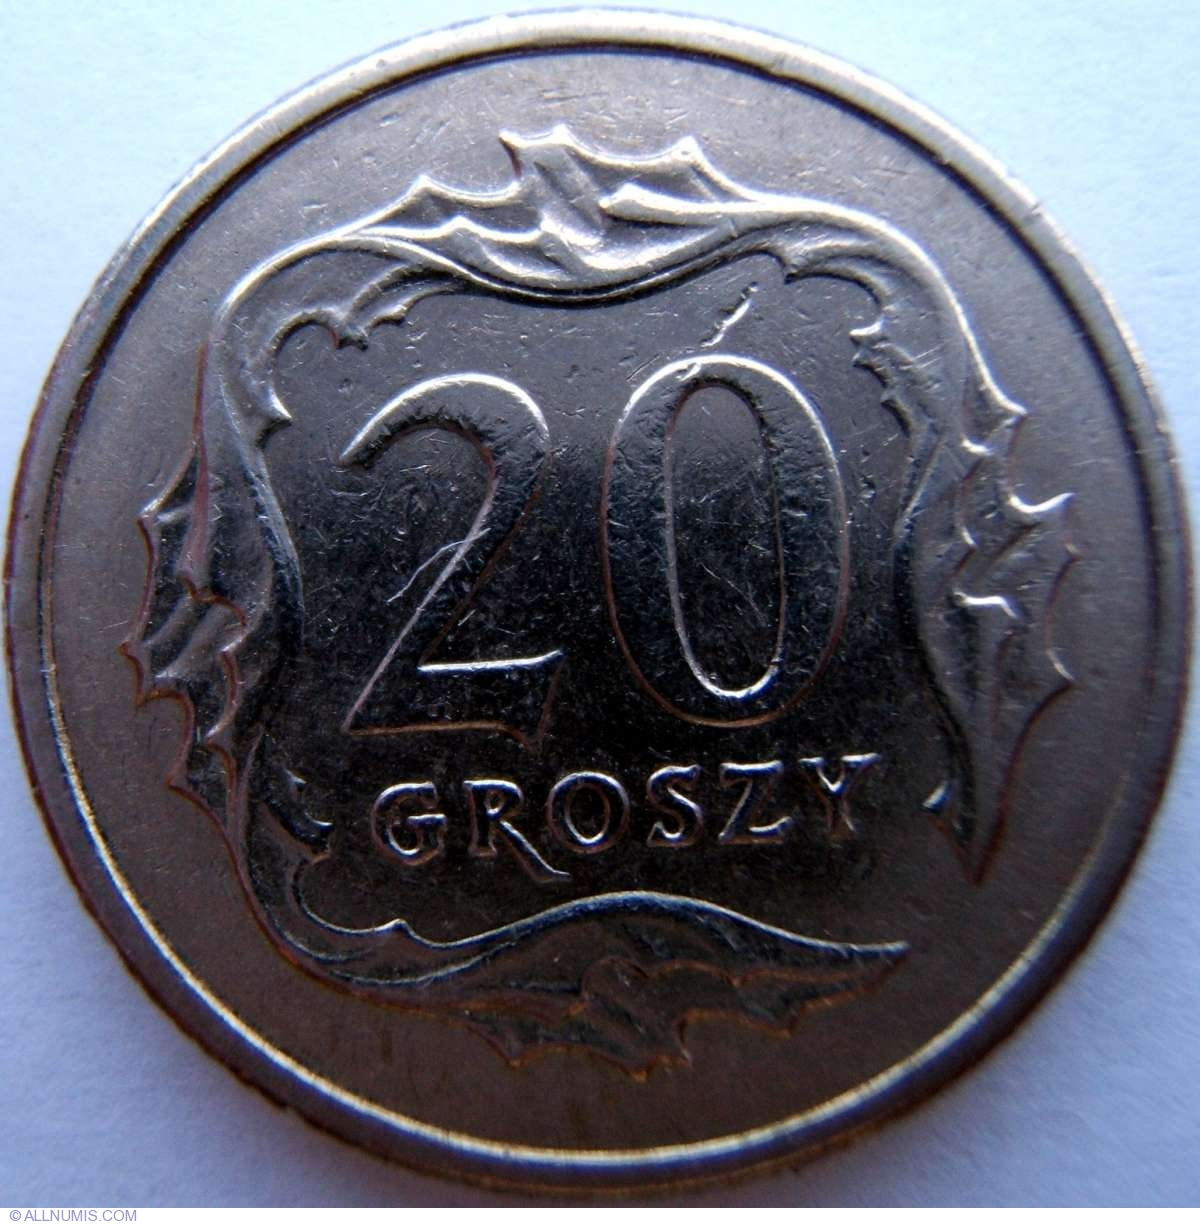 Groszy 1991 new pence